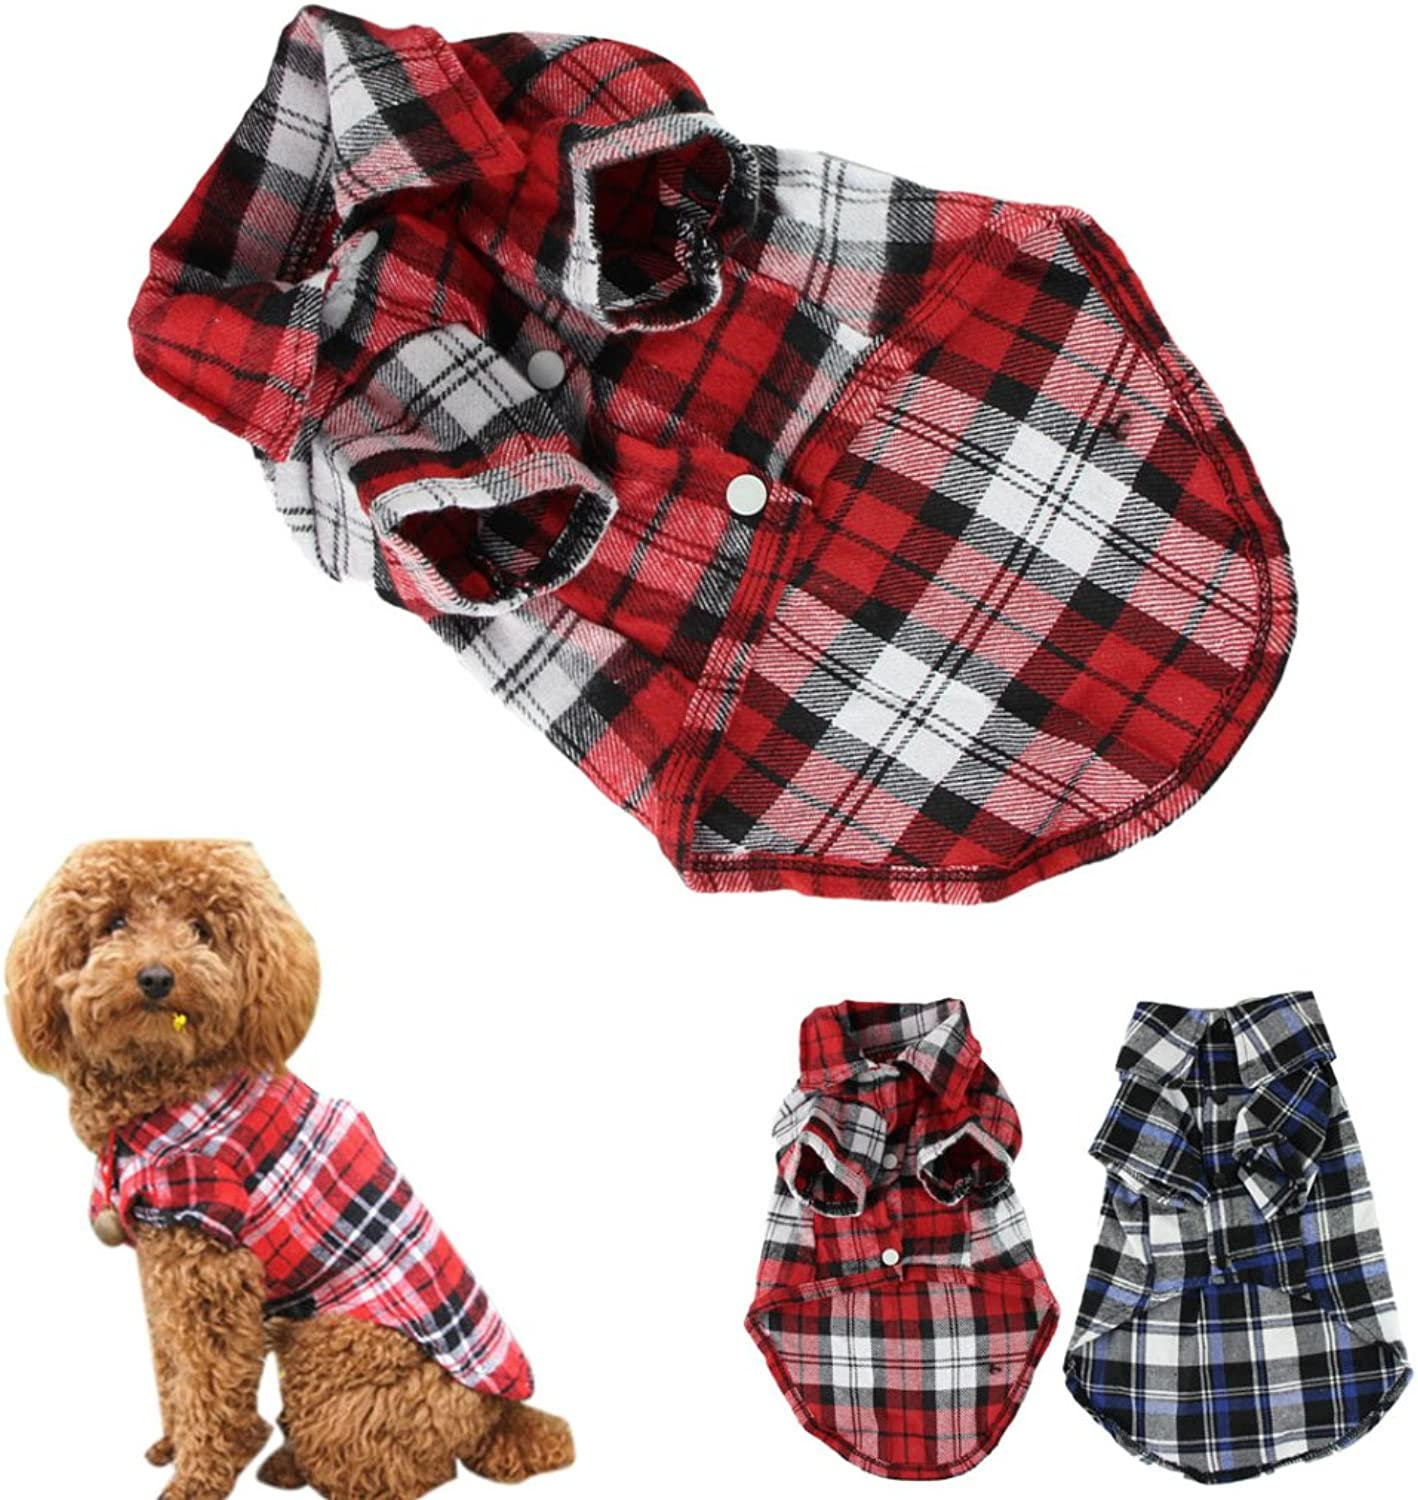 CXB1983(TM)Cute Pet Dog Puppy Clothes Shirt Size XS S M L bluee Red color (XS, Red) by CXB1983(TM)